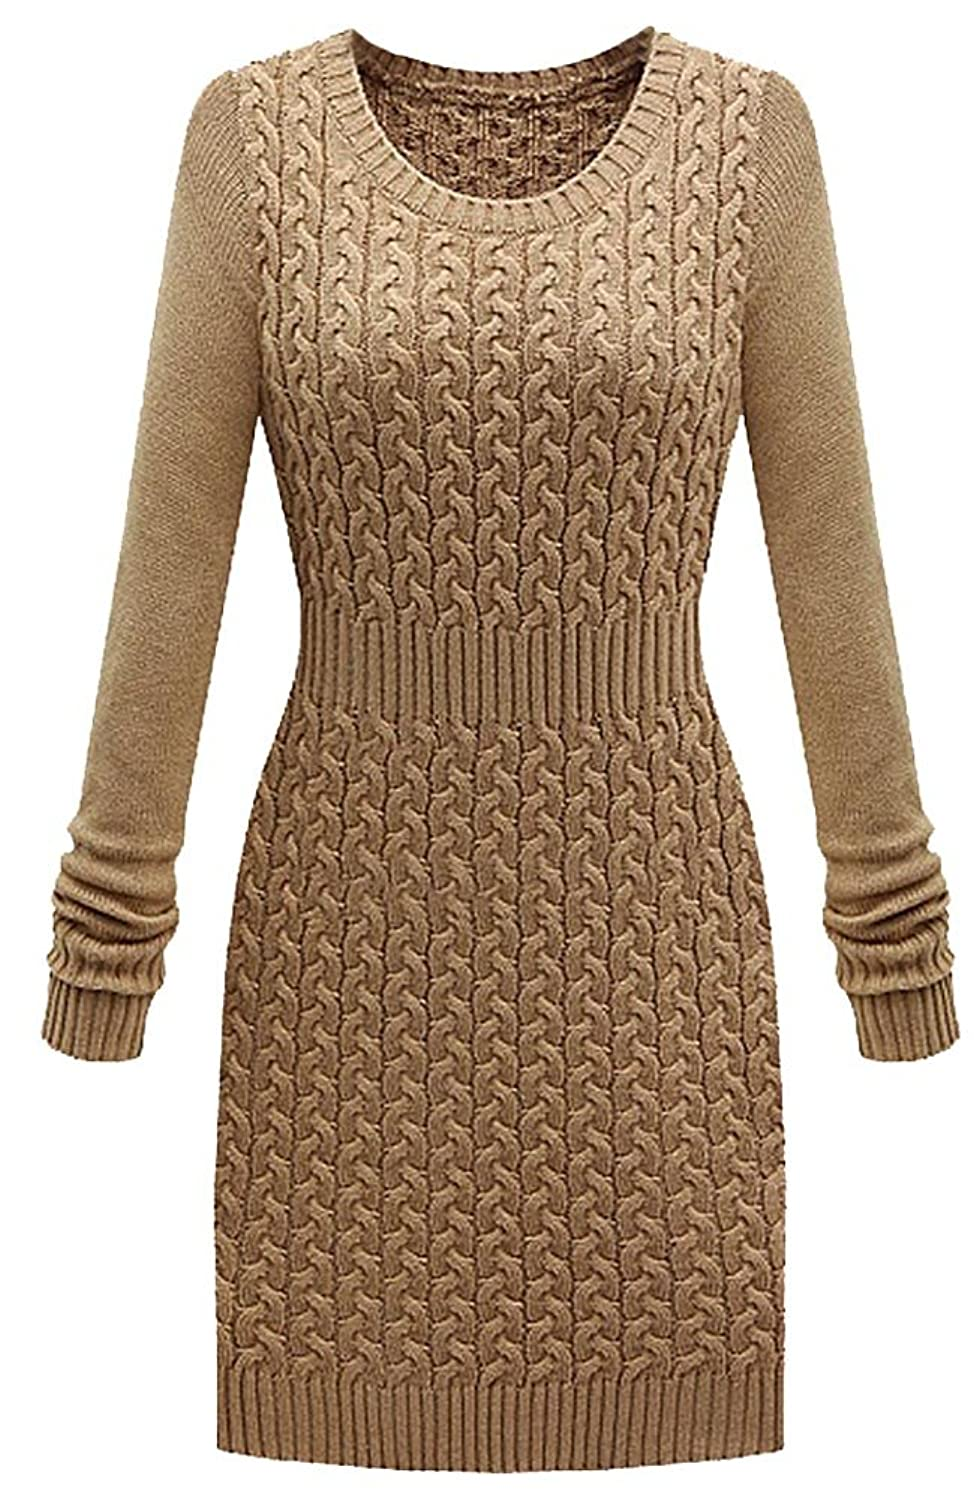 Kufv@Womens Long Sleeve Bodycon Pencil Knitted Sweater Basic Mini Dress